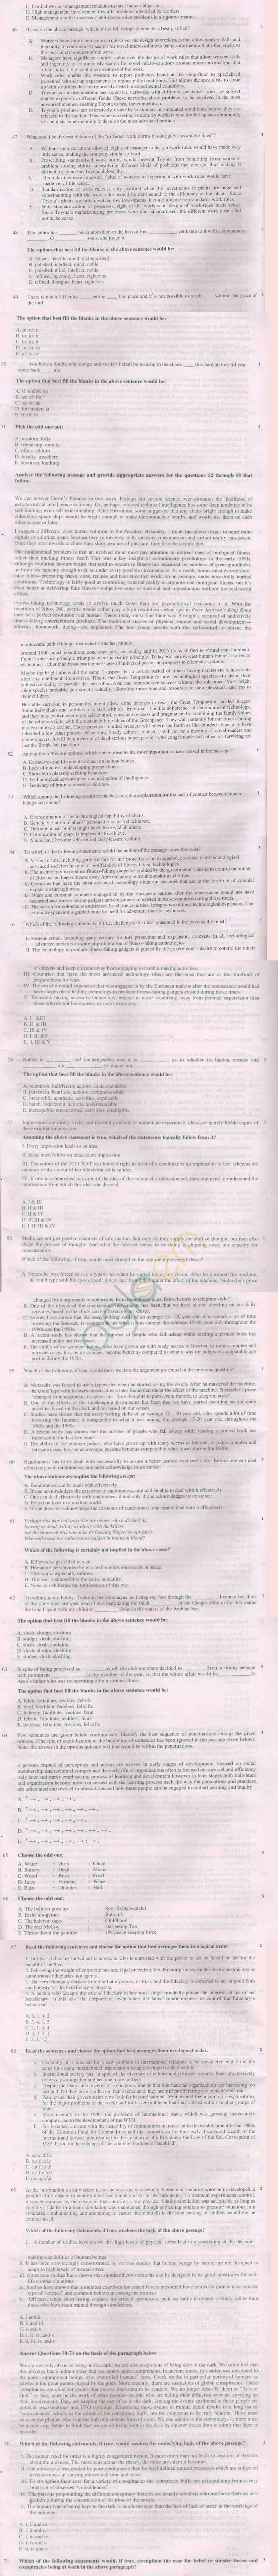 XAT 2011 Question Paper with Solutions